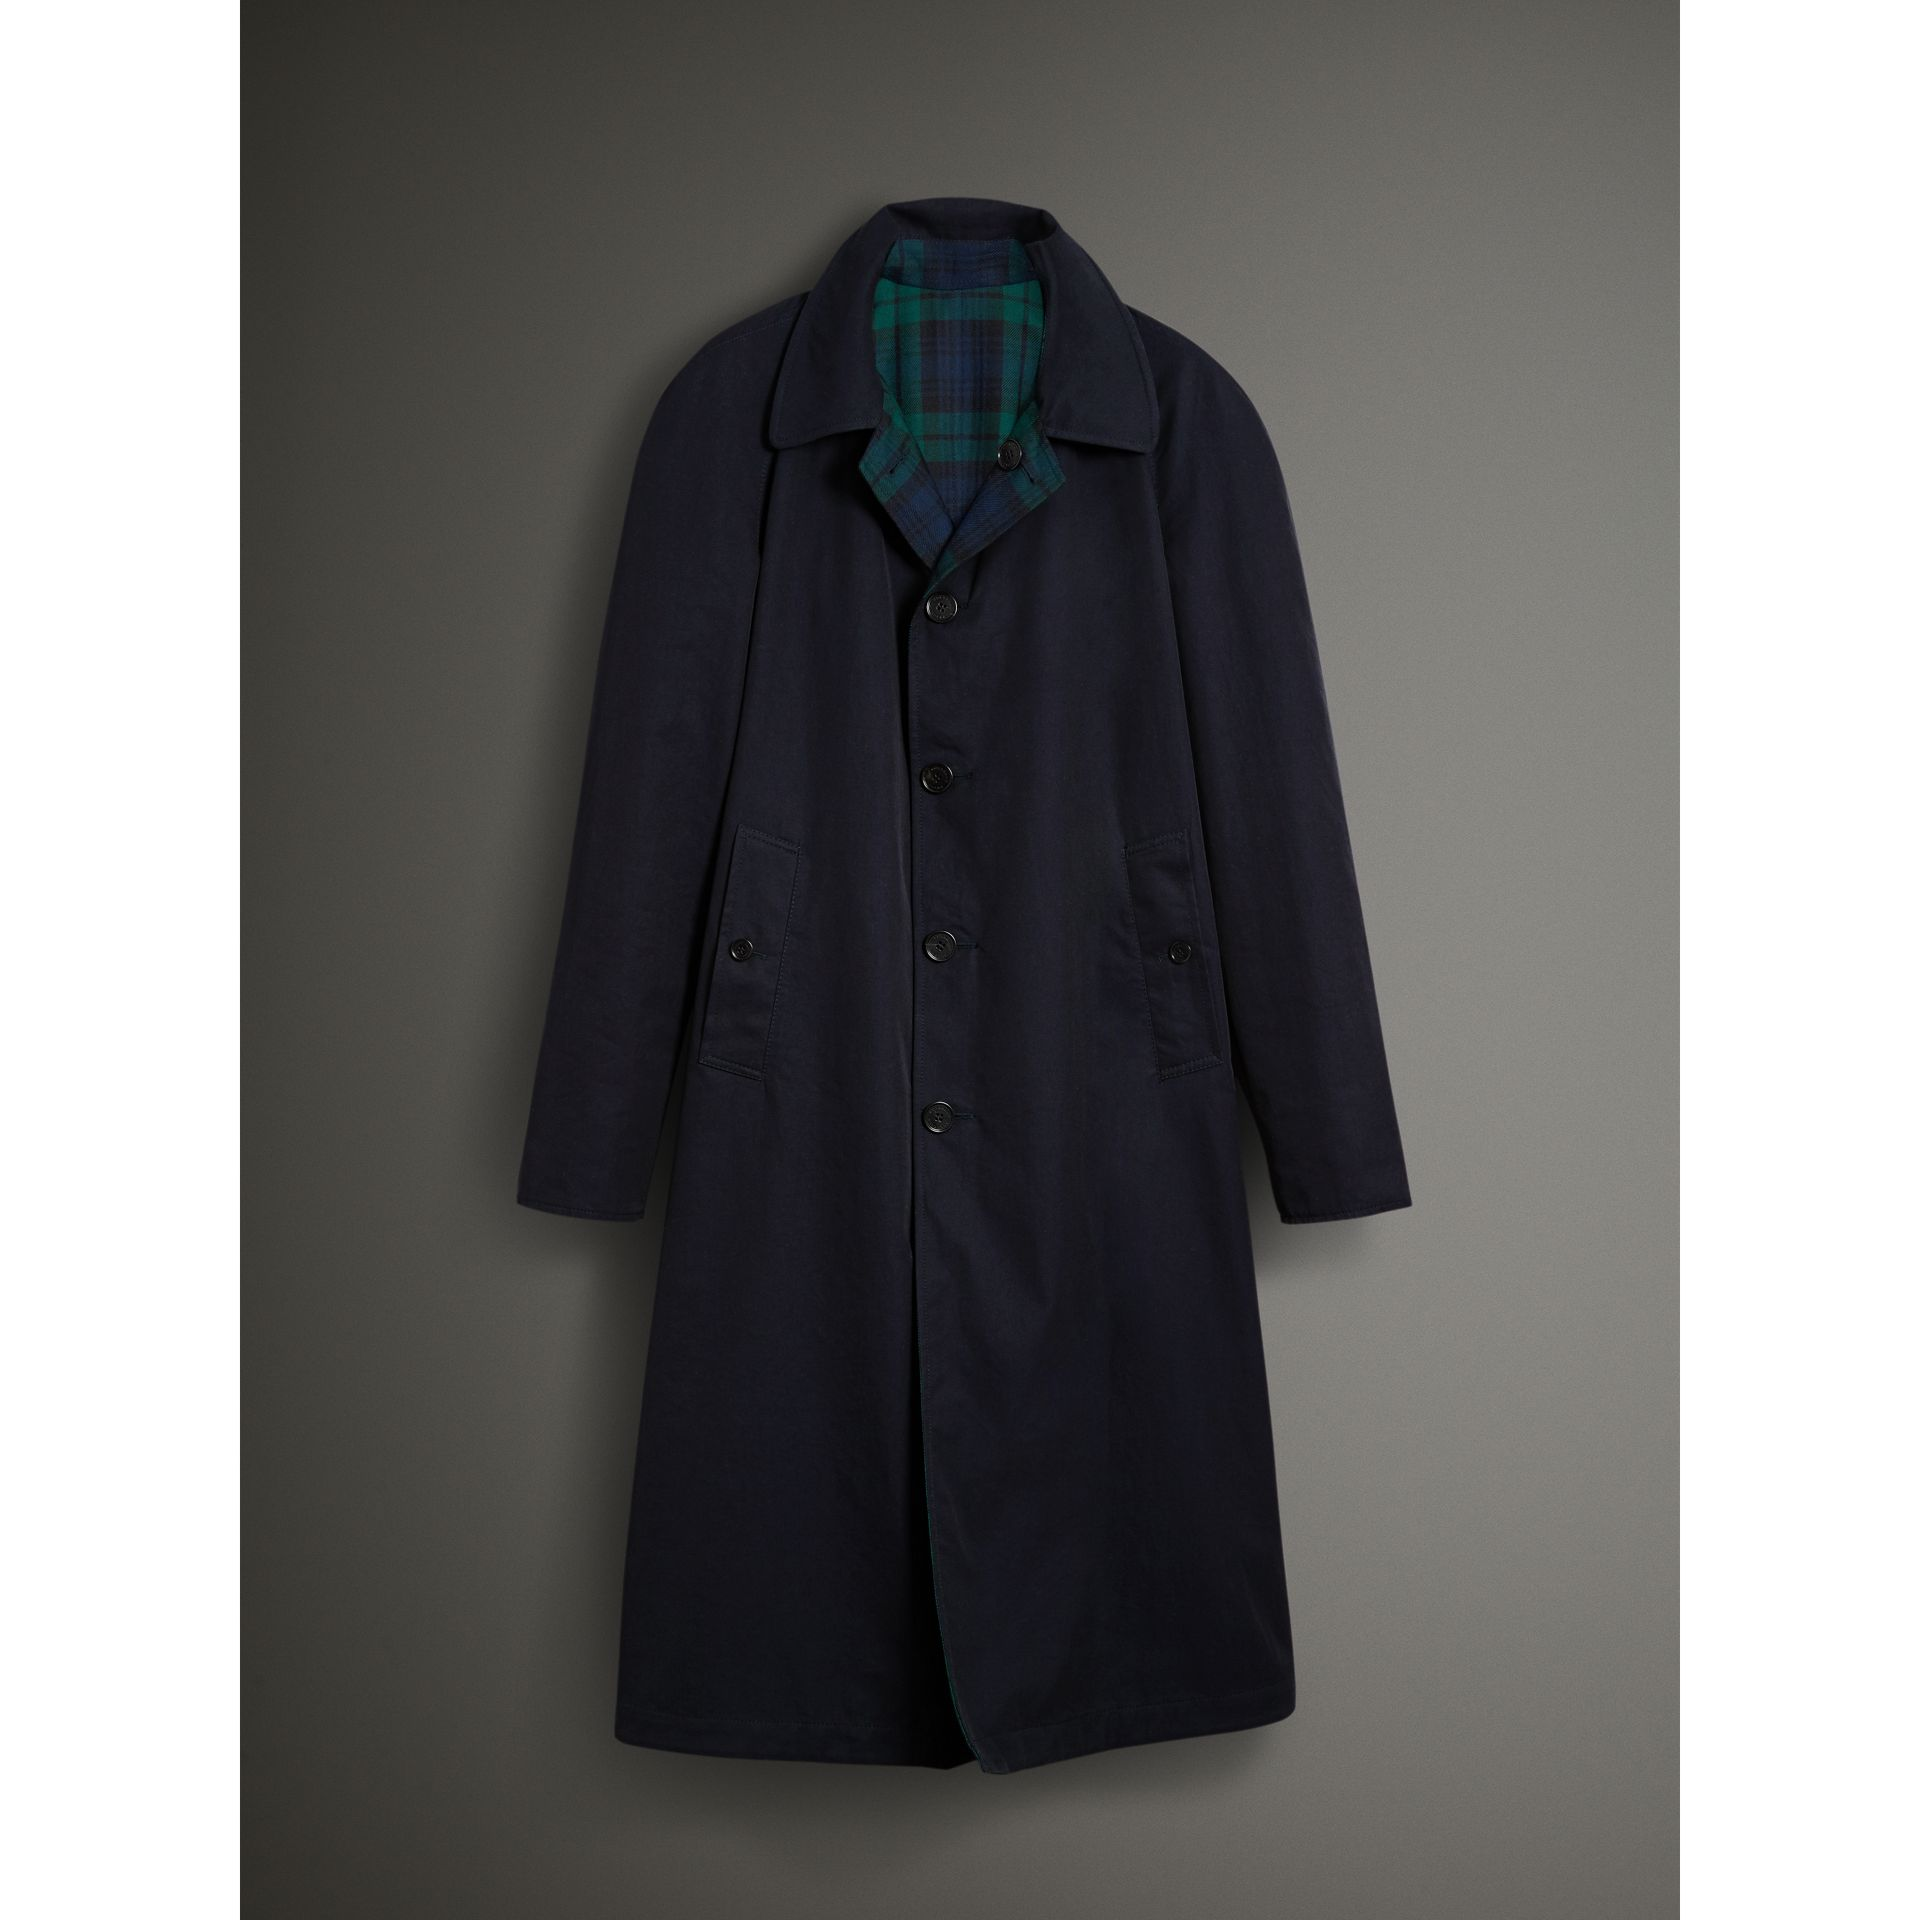 Reversible Tartan Wool and Cotton Gabardine Car Coat in Navy - Men | Burberry - gallery image 8